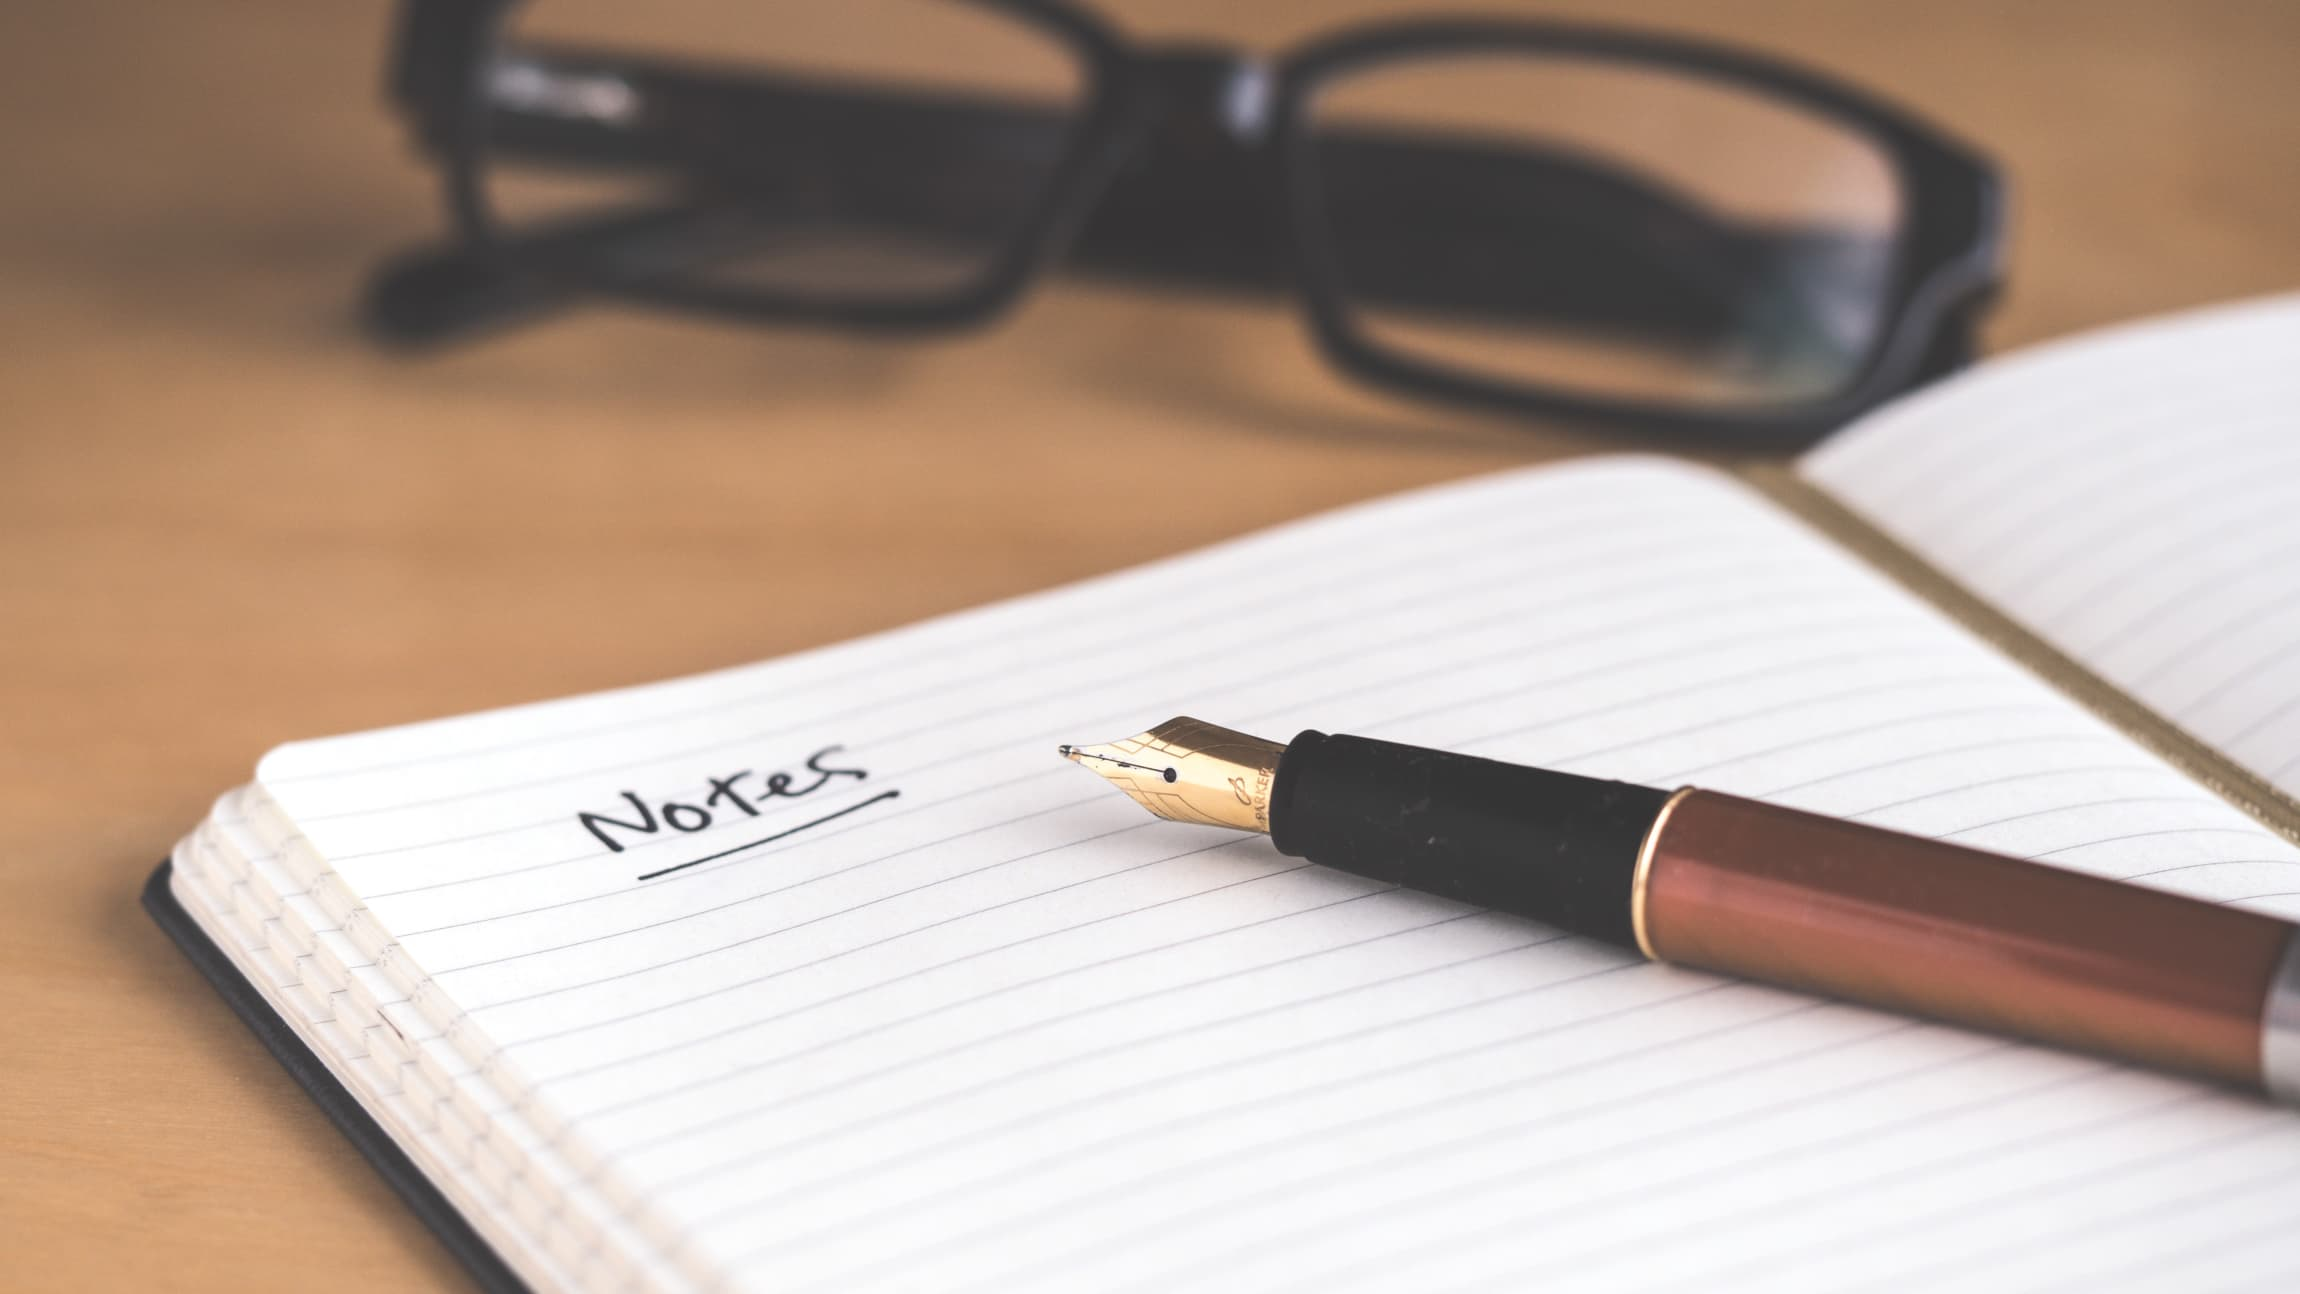 """A notebook lies open on a desk with the word """"Notes"""" written in it."""